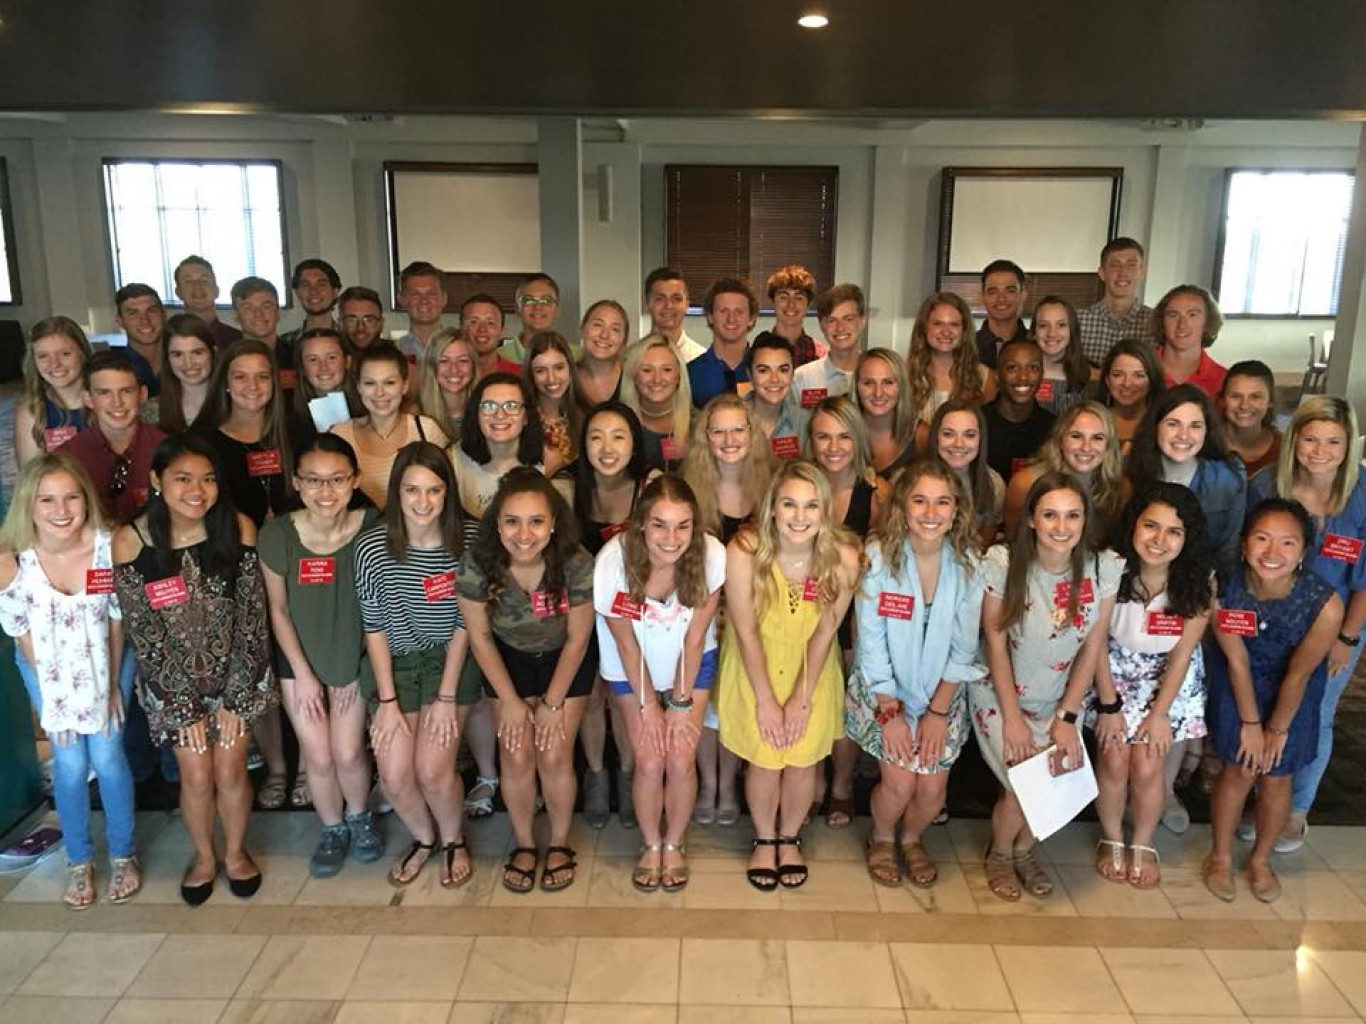 DEADLINE APPROACHING FOR YOUTH LEADERSHIP OKLAHOMA APPLICATIONS